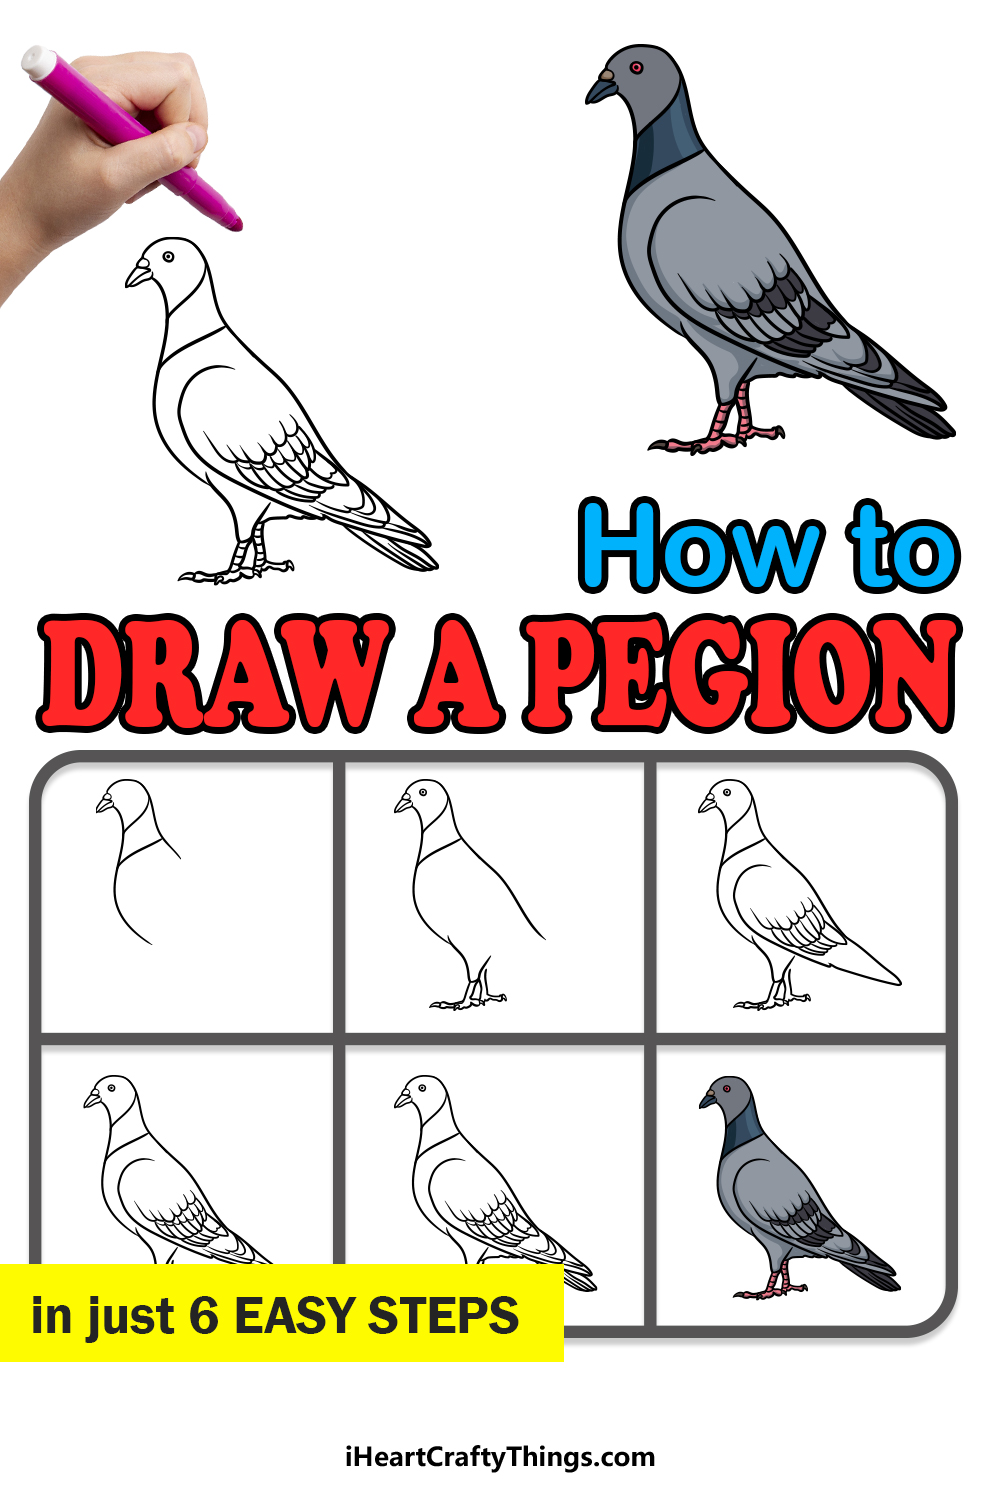 how to draw a pigeon in 6 easy steps